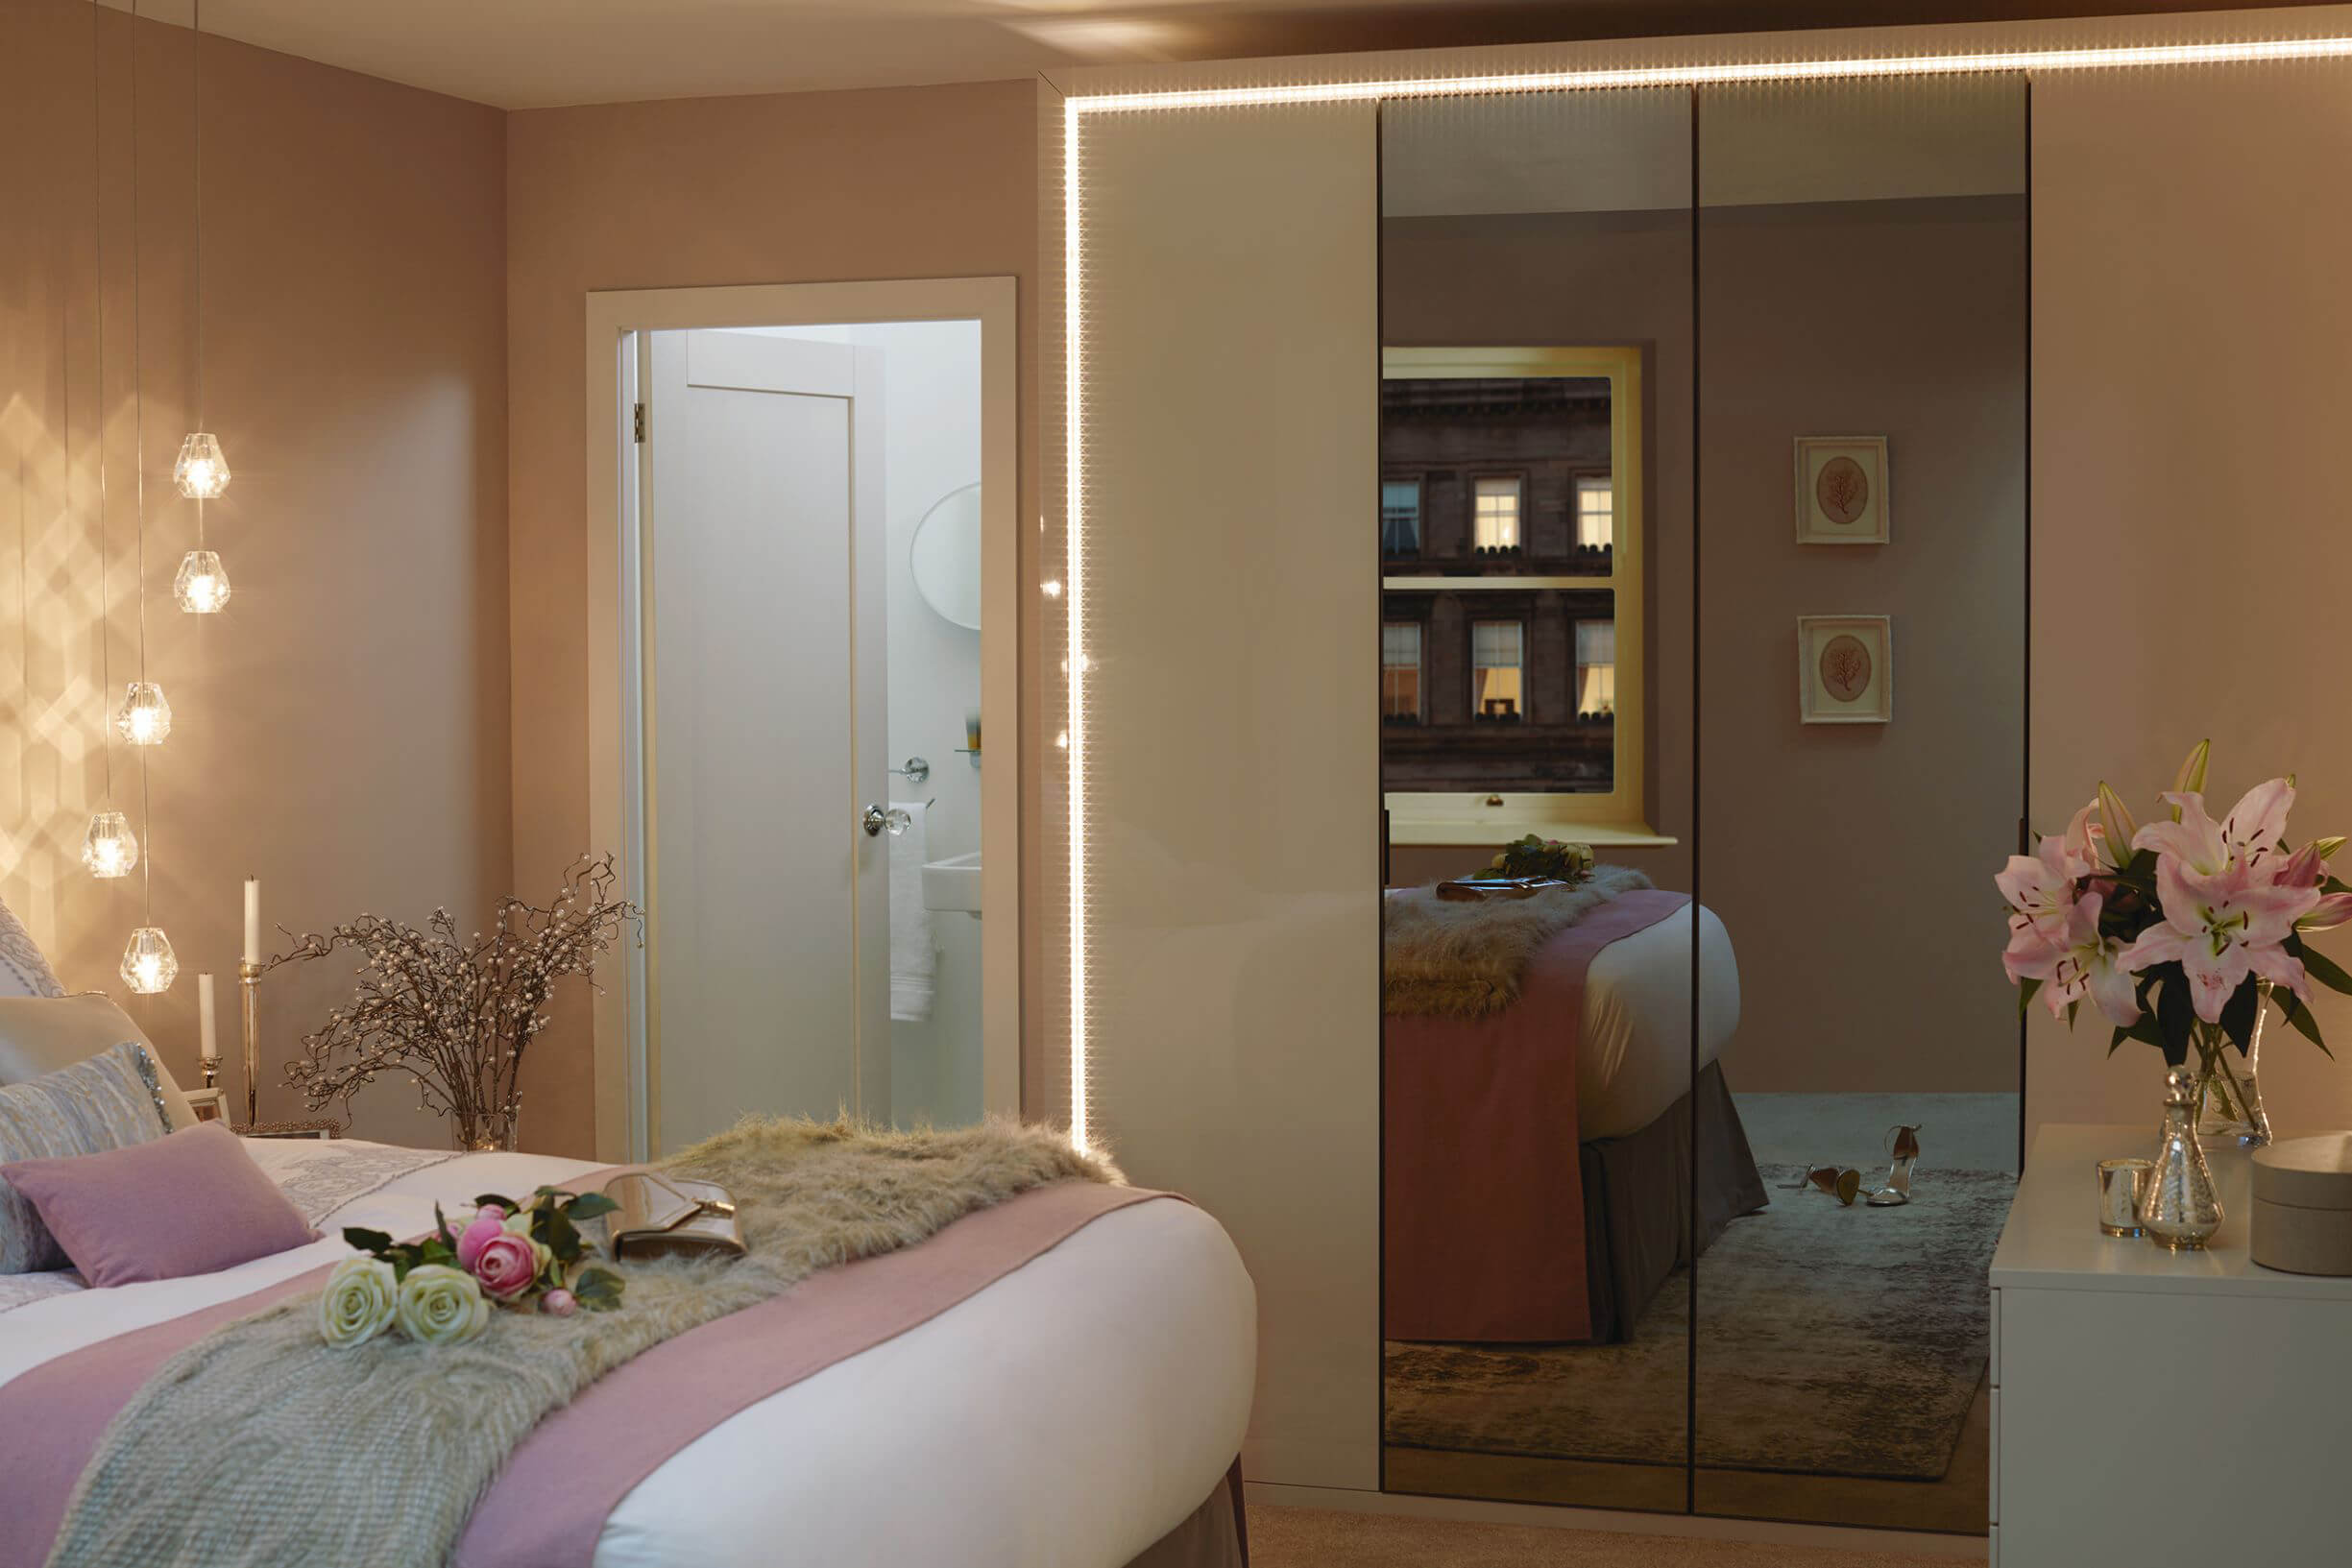 Kindred-Bedrooms-Parity-Gallery6